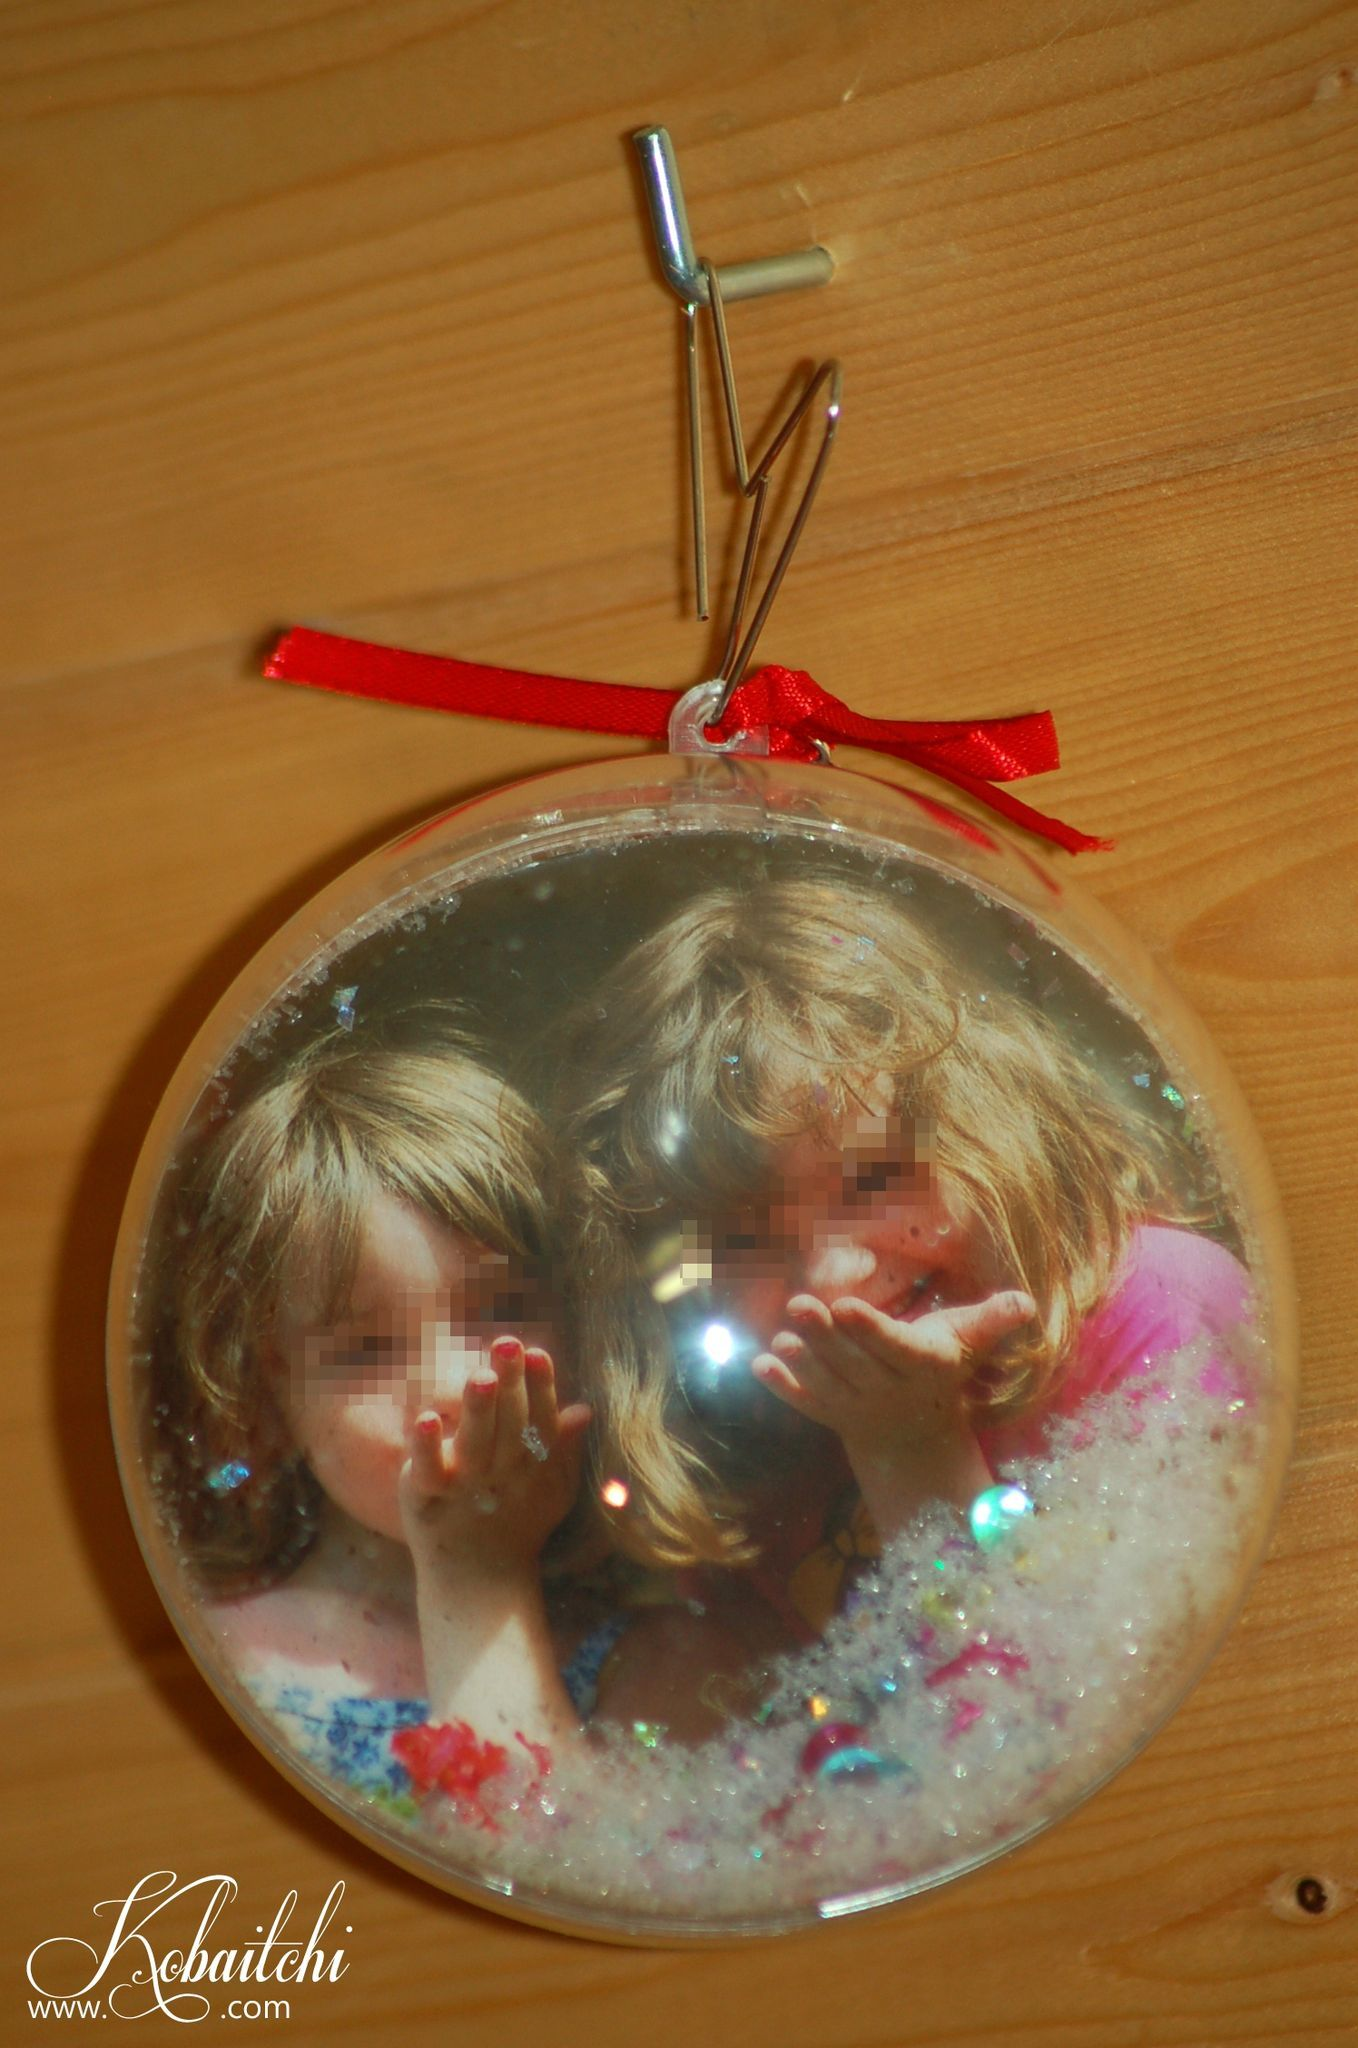 Boule de noel transparente a decorer en plastique - Decoration boule plastique transparente ...